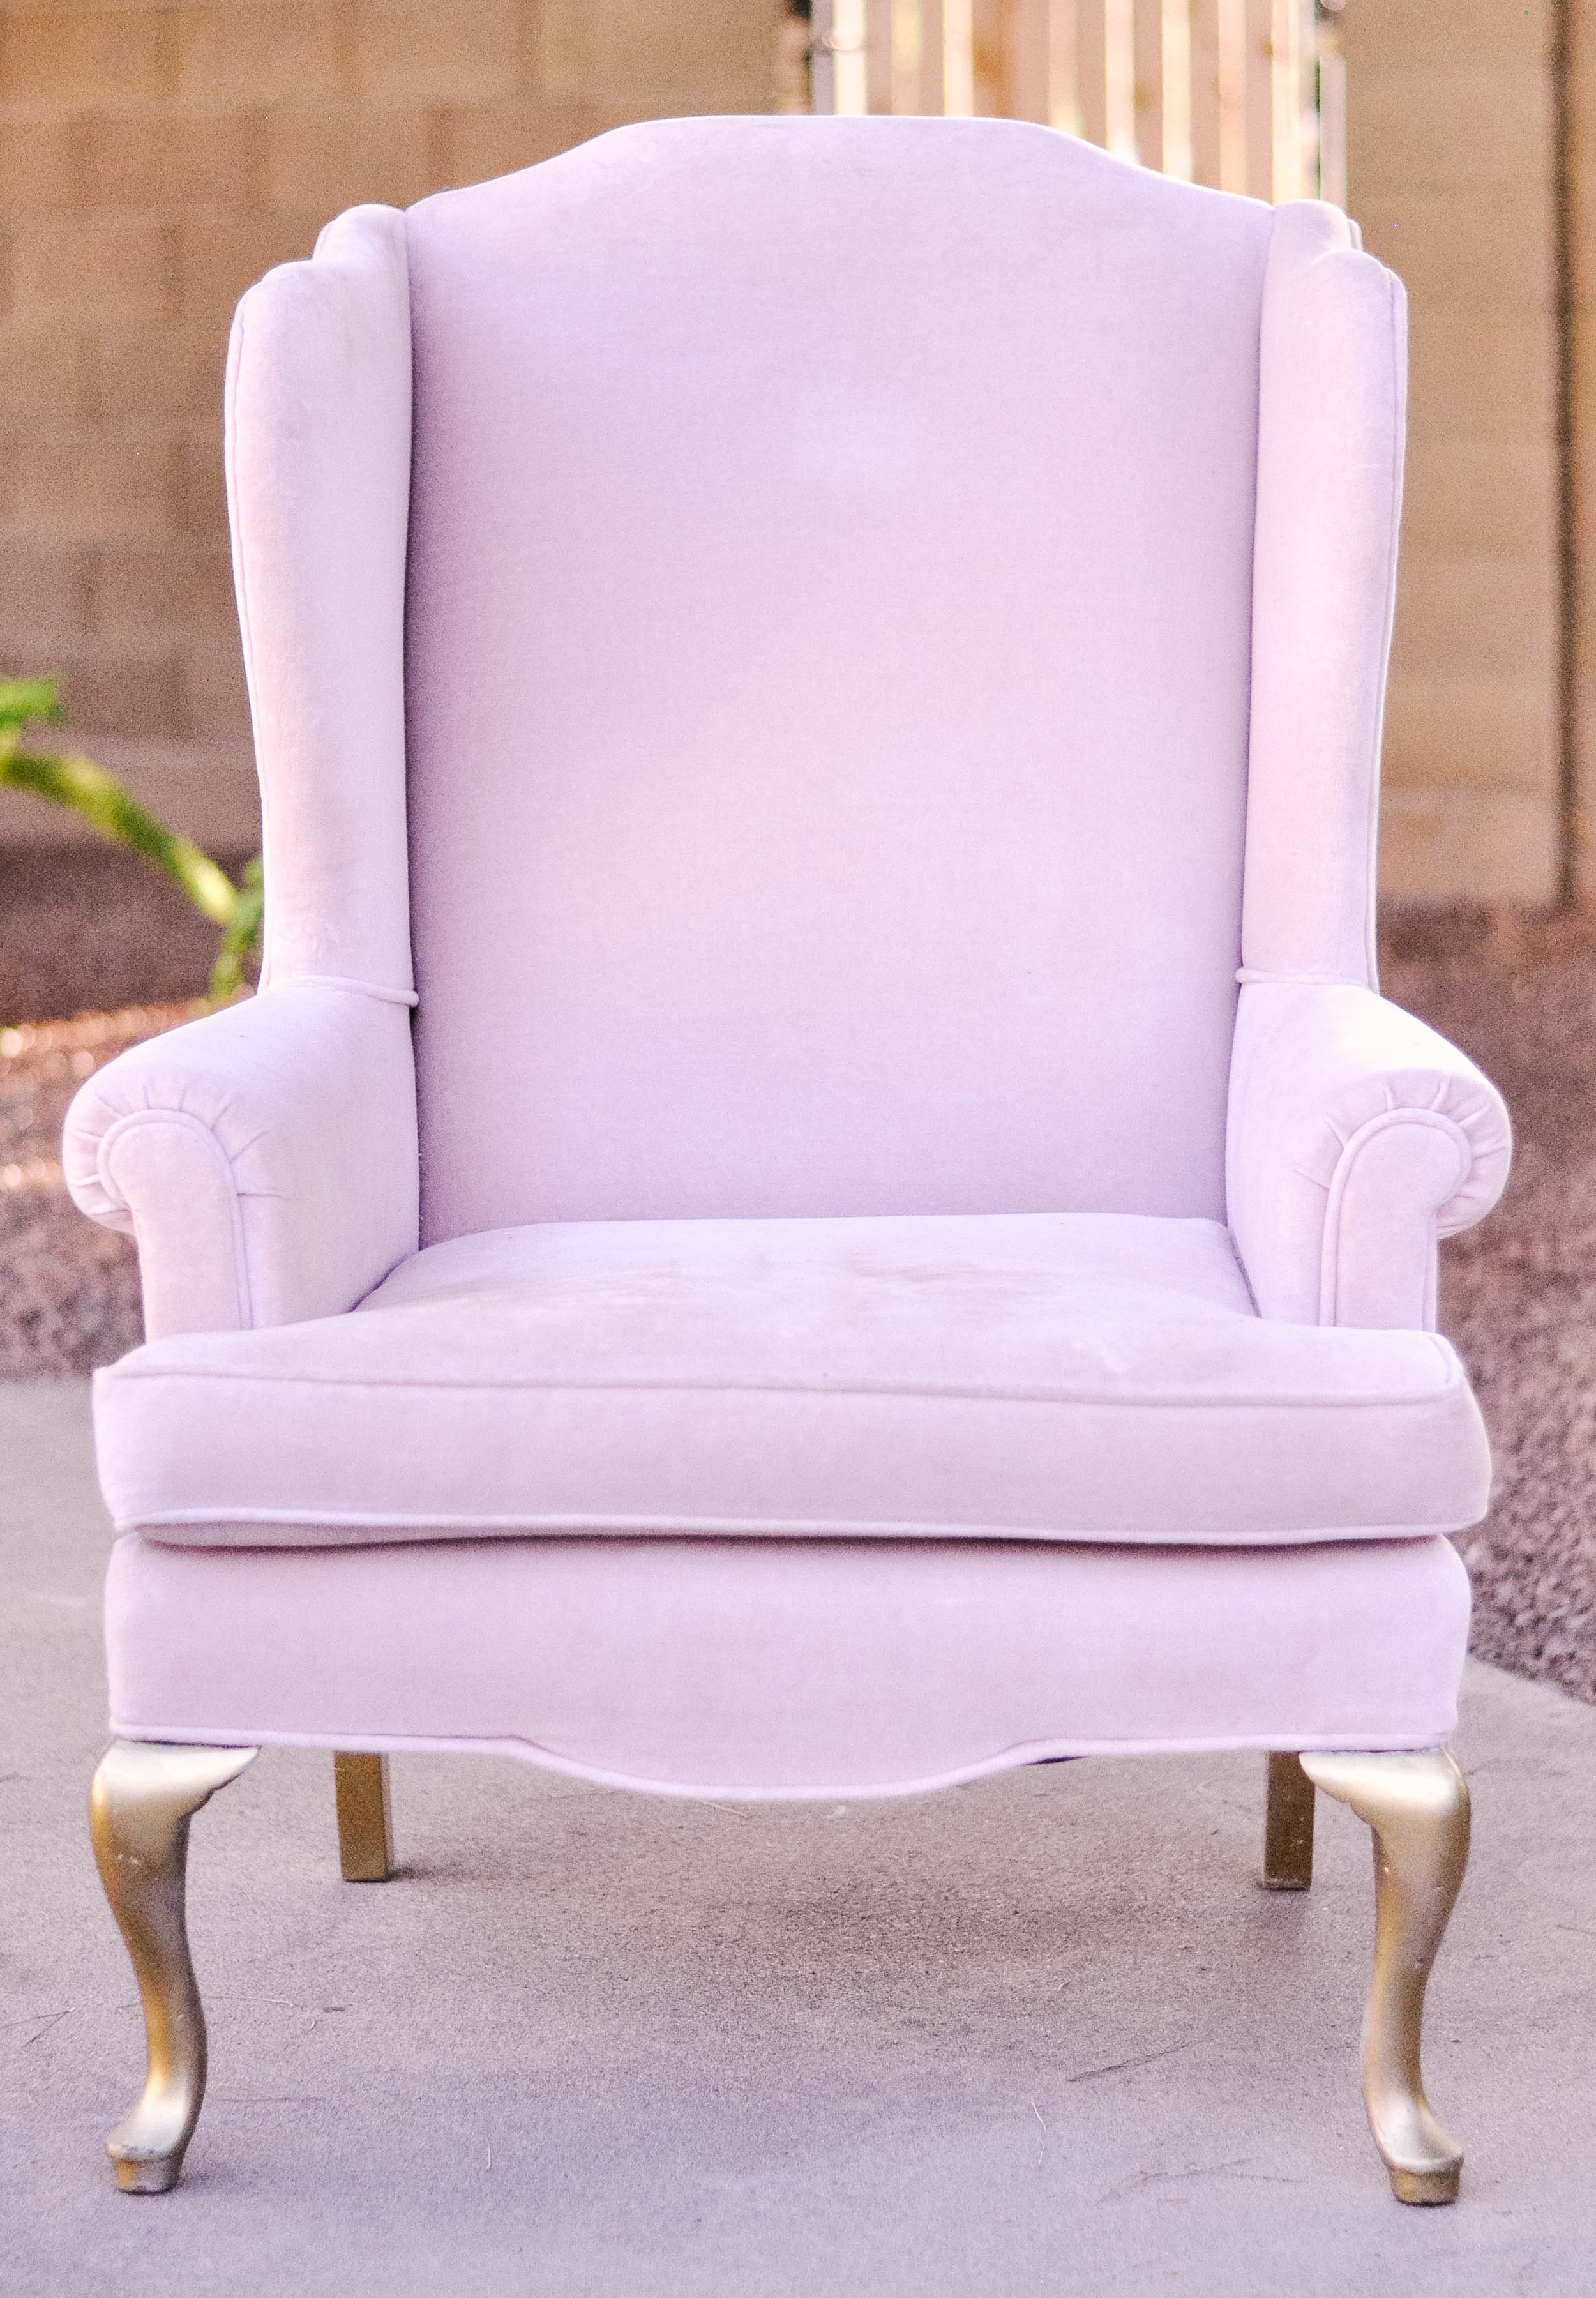 How-To-Reupholster-A-Chair-2.jpg